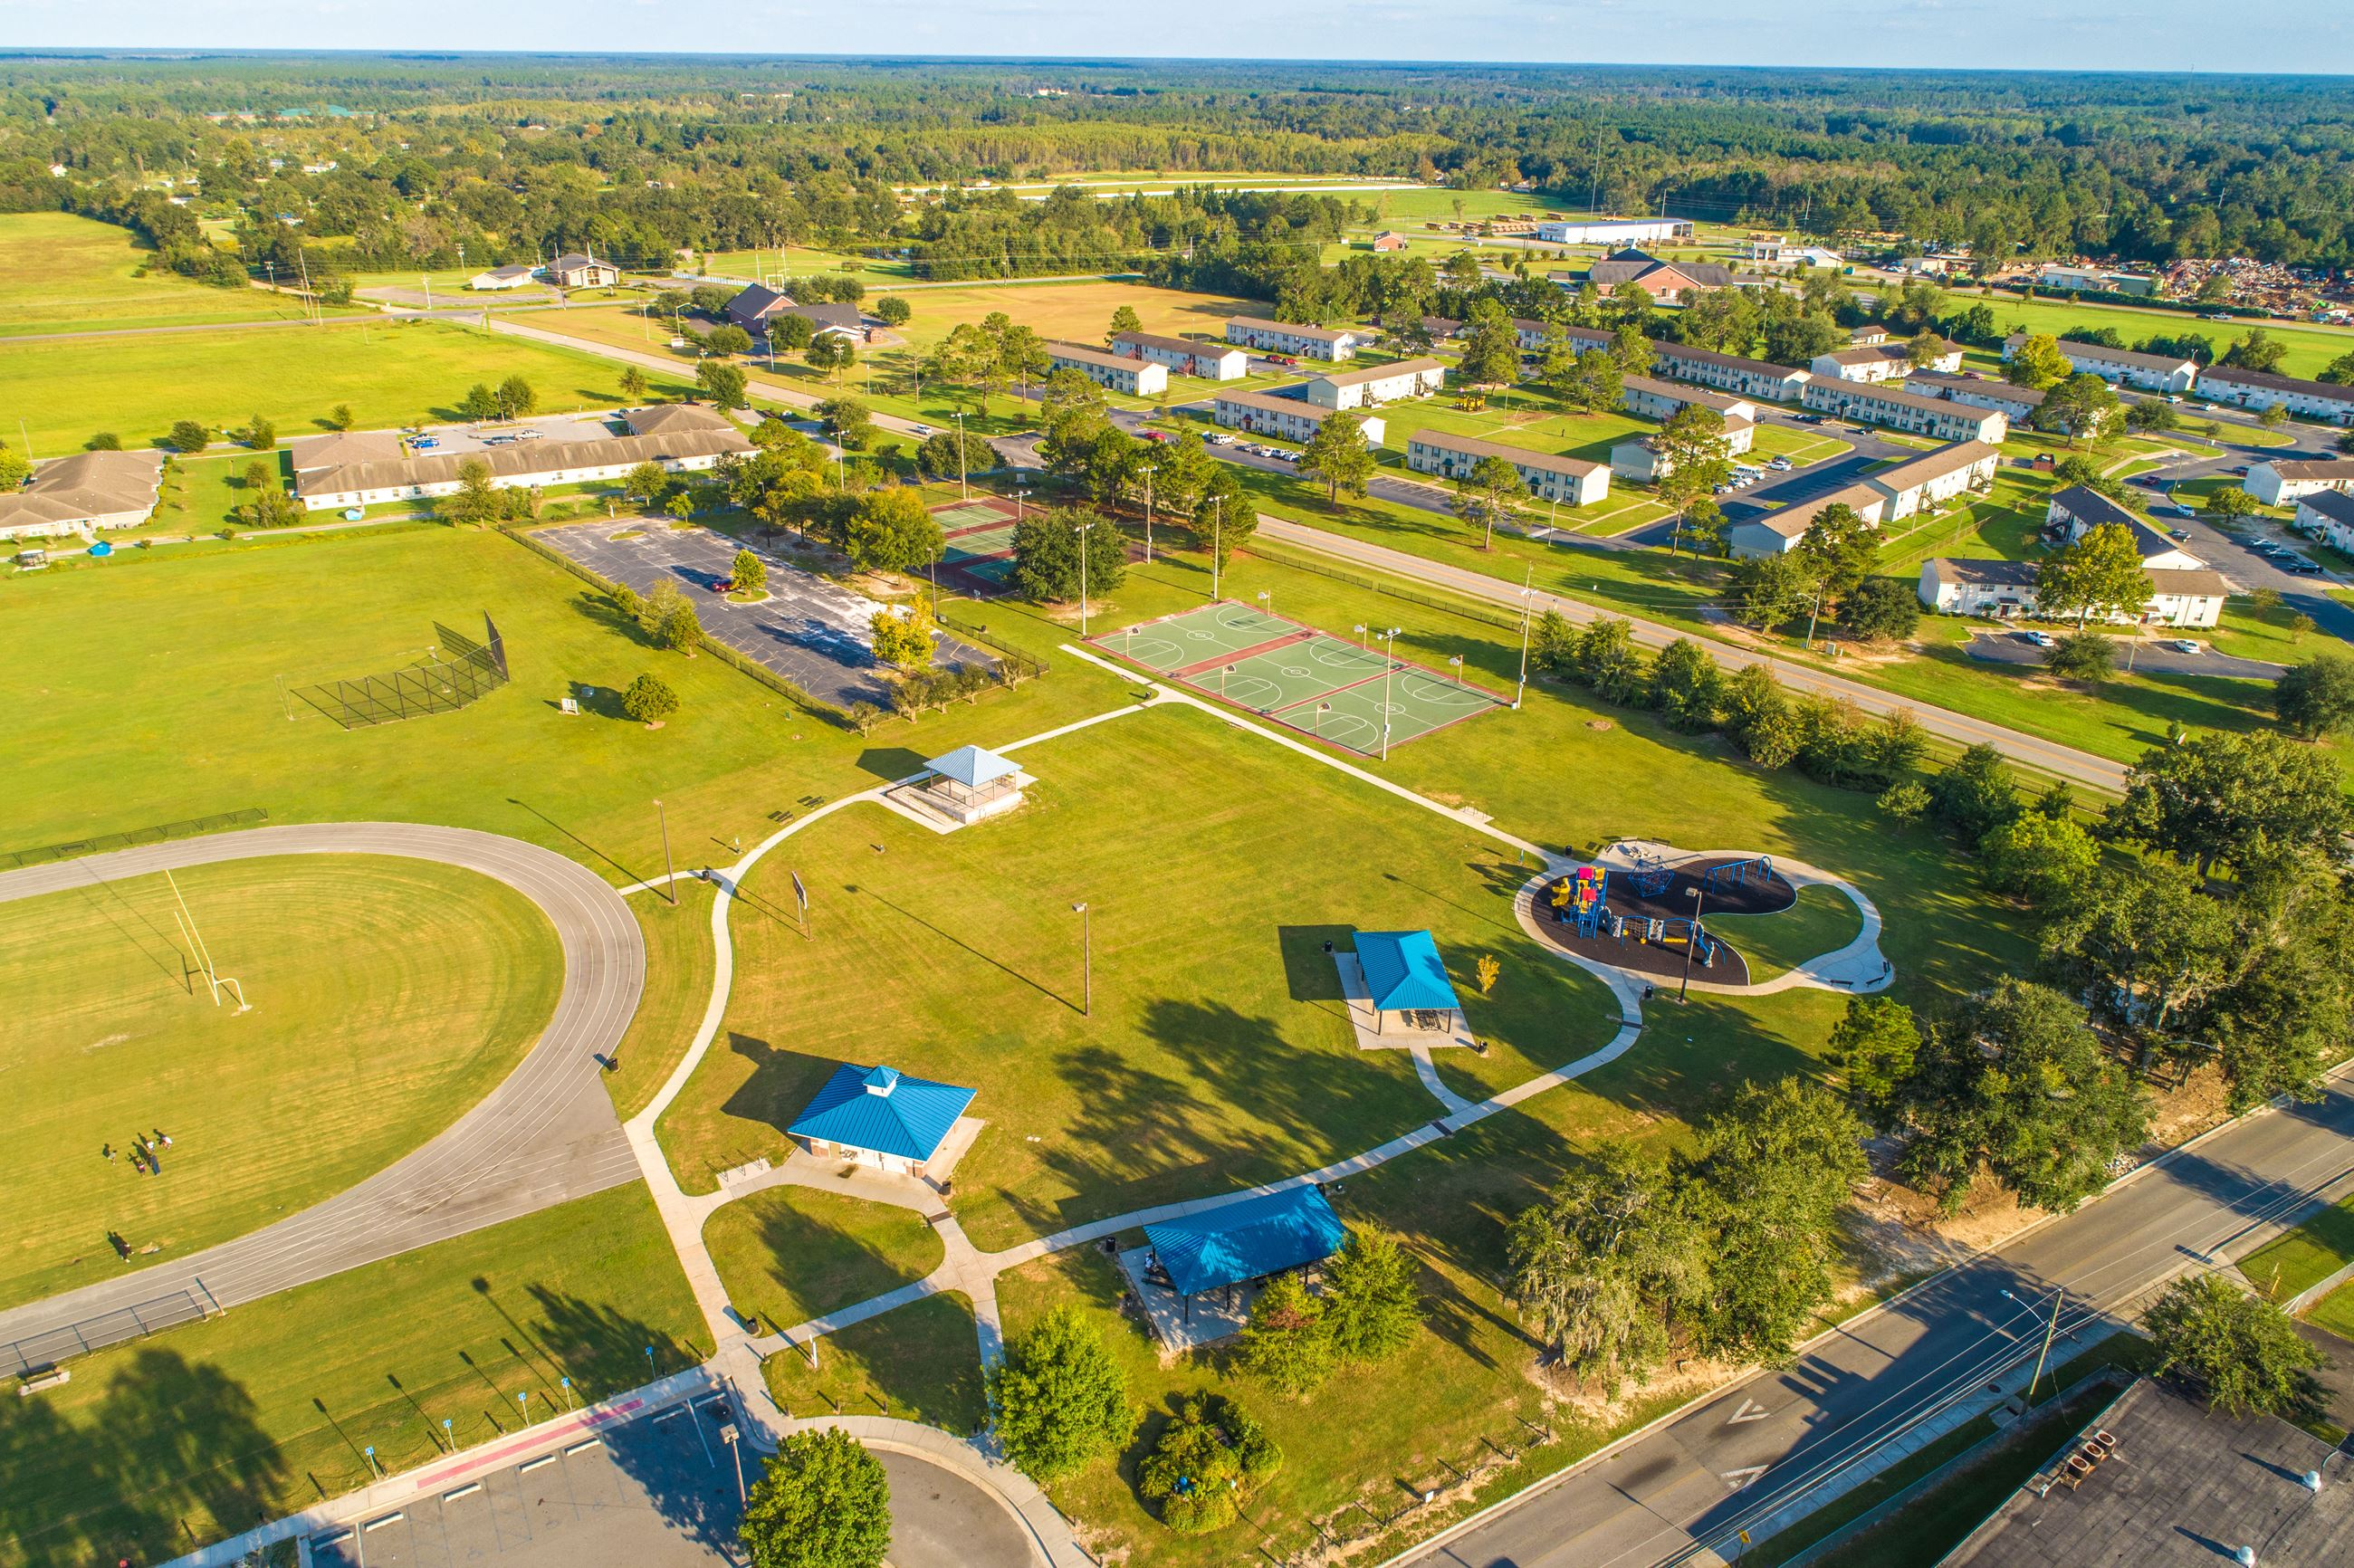 Image showing an aerial view of a park with picnic shelters and playground.